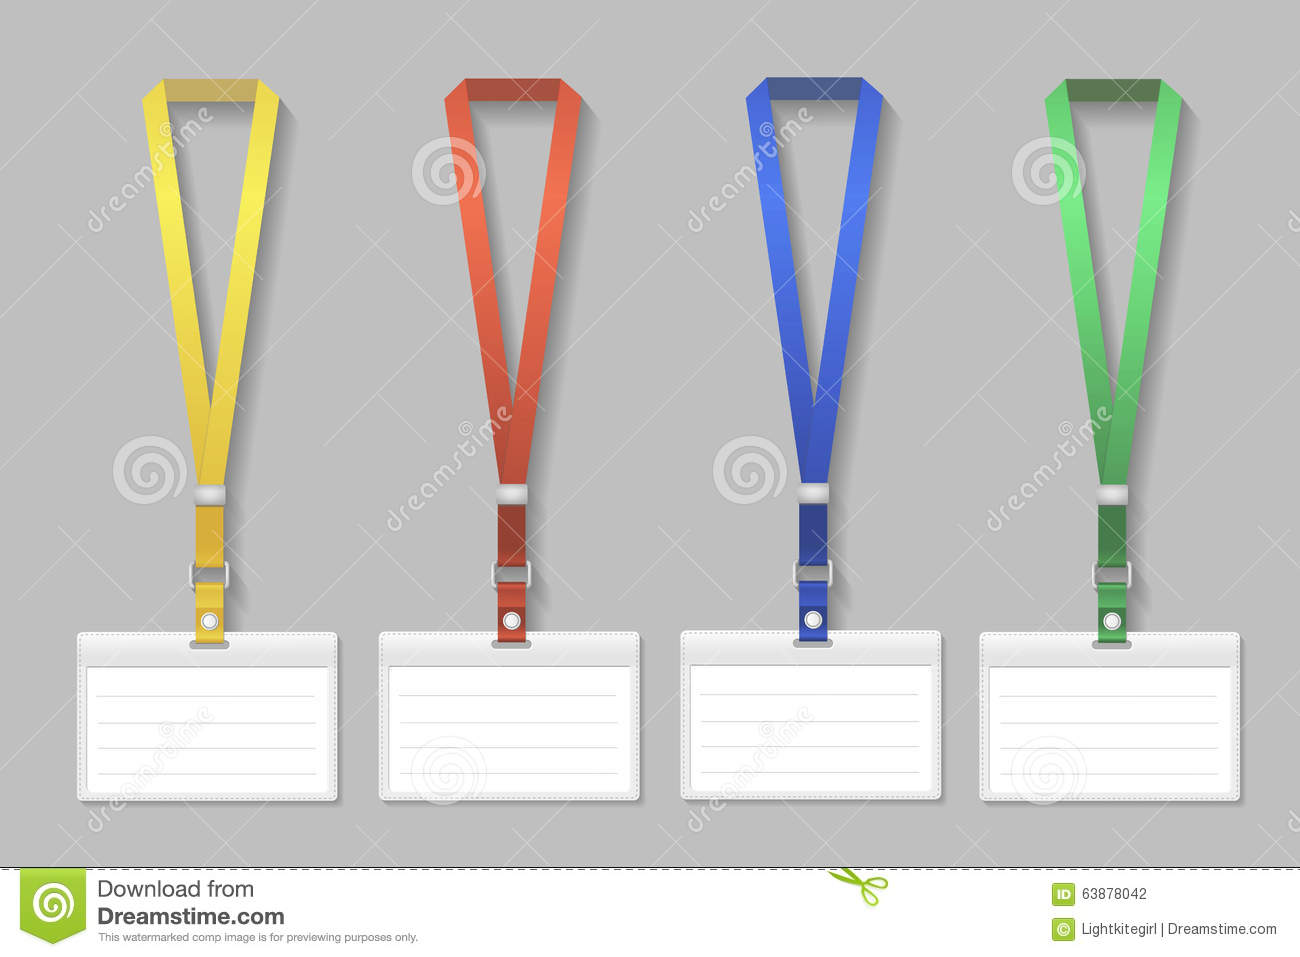 Badge Template, Name Bag Holder With Lanyard Set Stock Vector ...